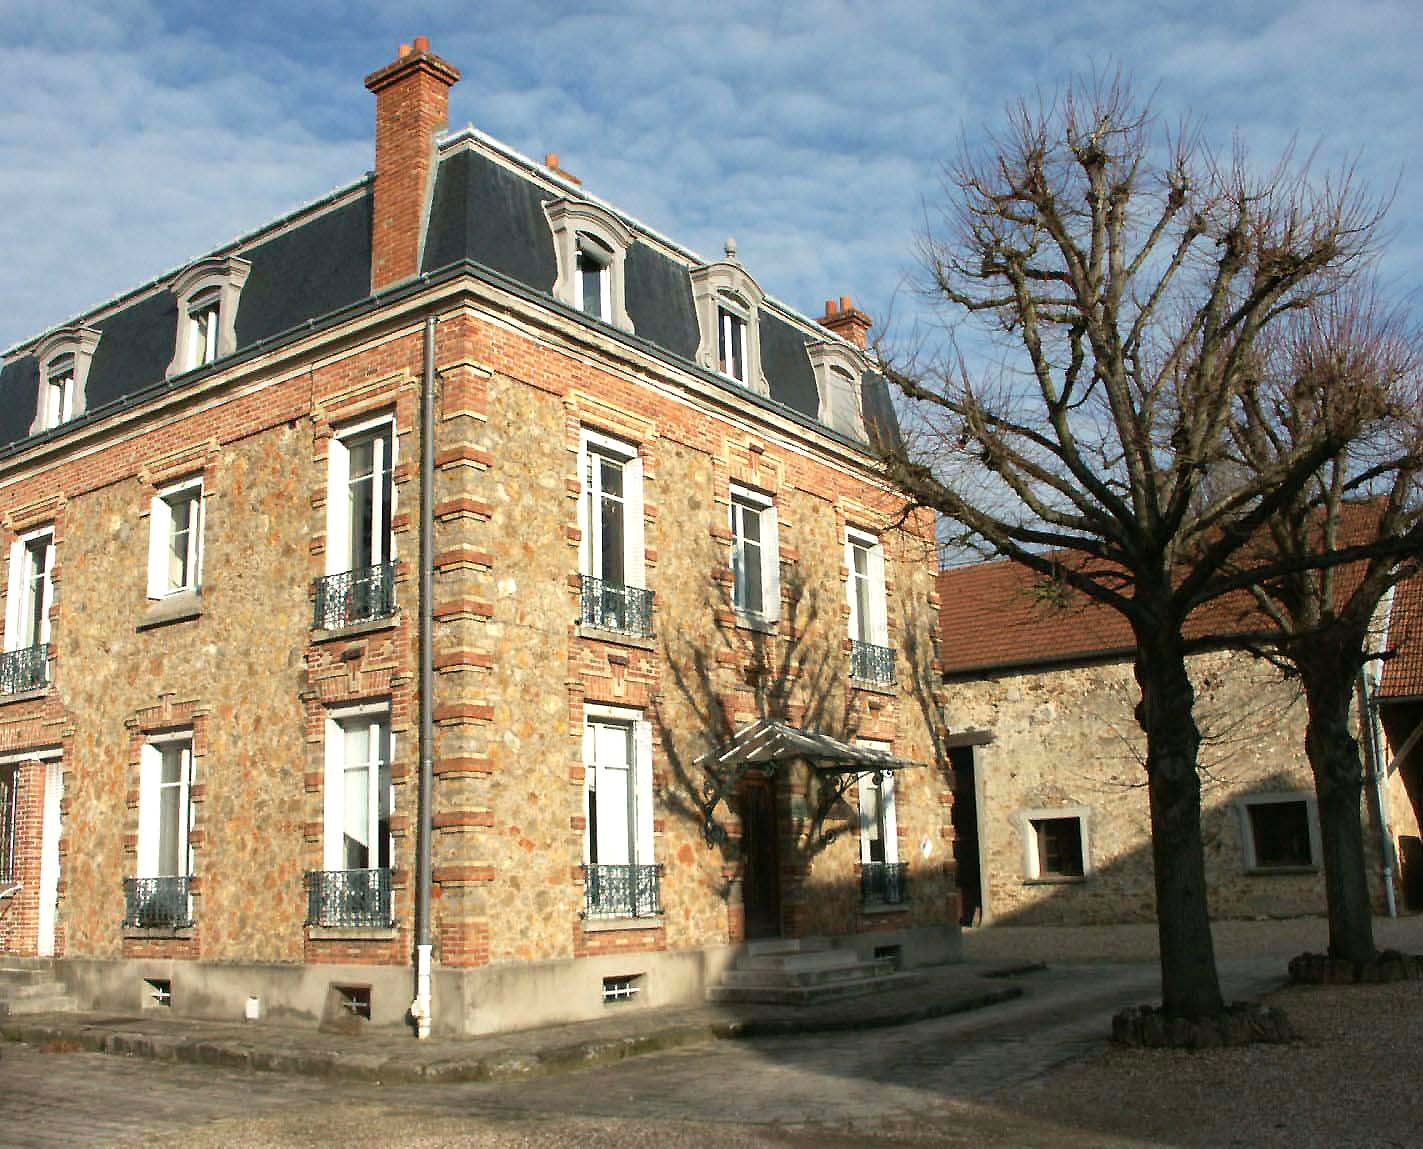 Ferme de Moulon (photo © Dominique de Vienne)